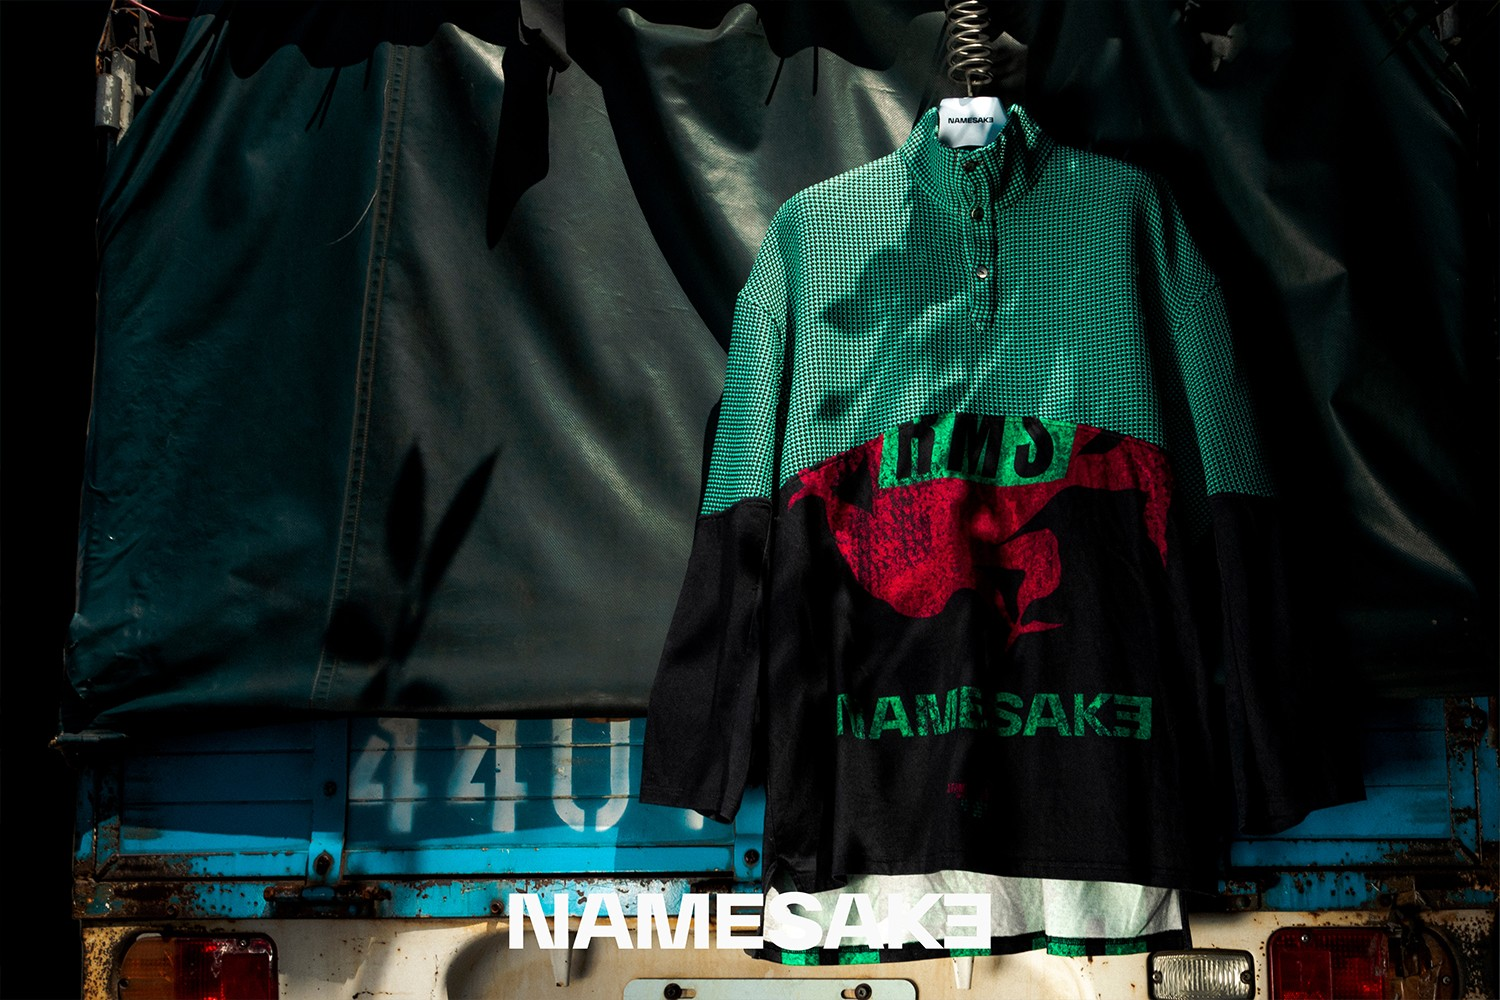 NAMESAKE AW20 FAMILY MATTERS collection launch and lookbook interview Japan Taiwan USA NESENSE Basketball outerwear